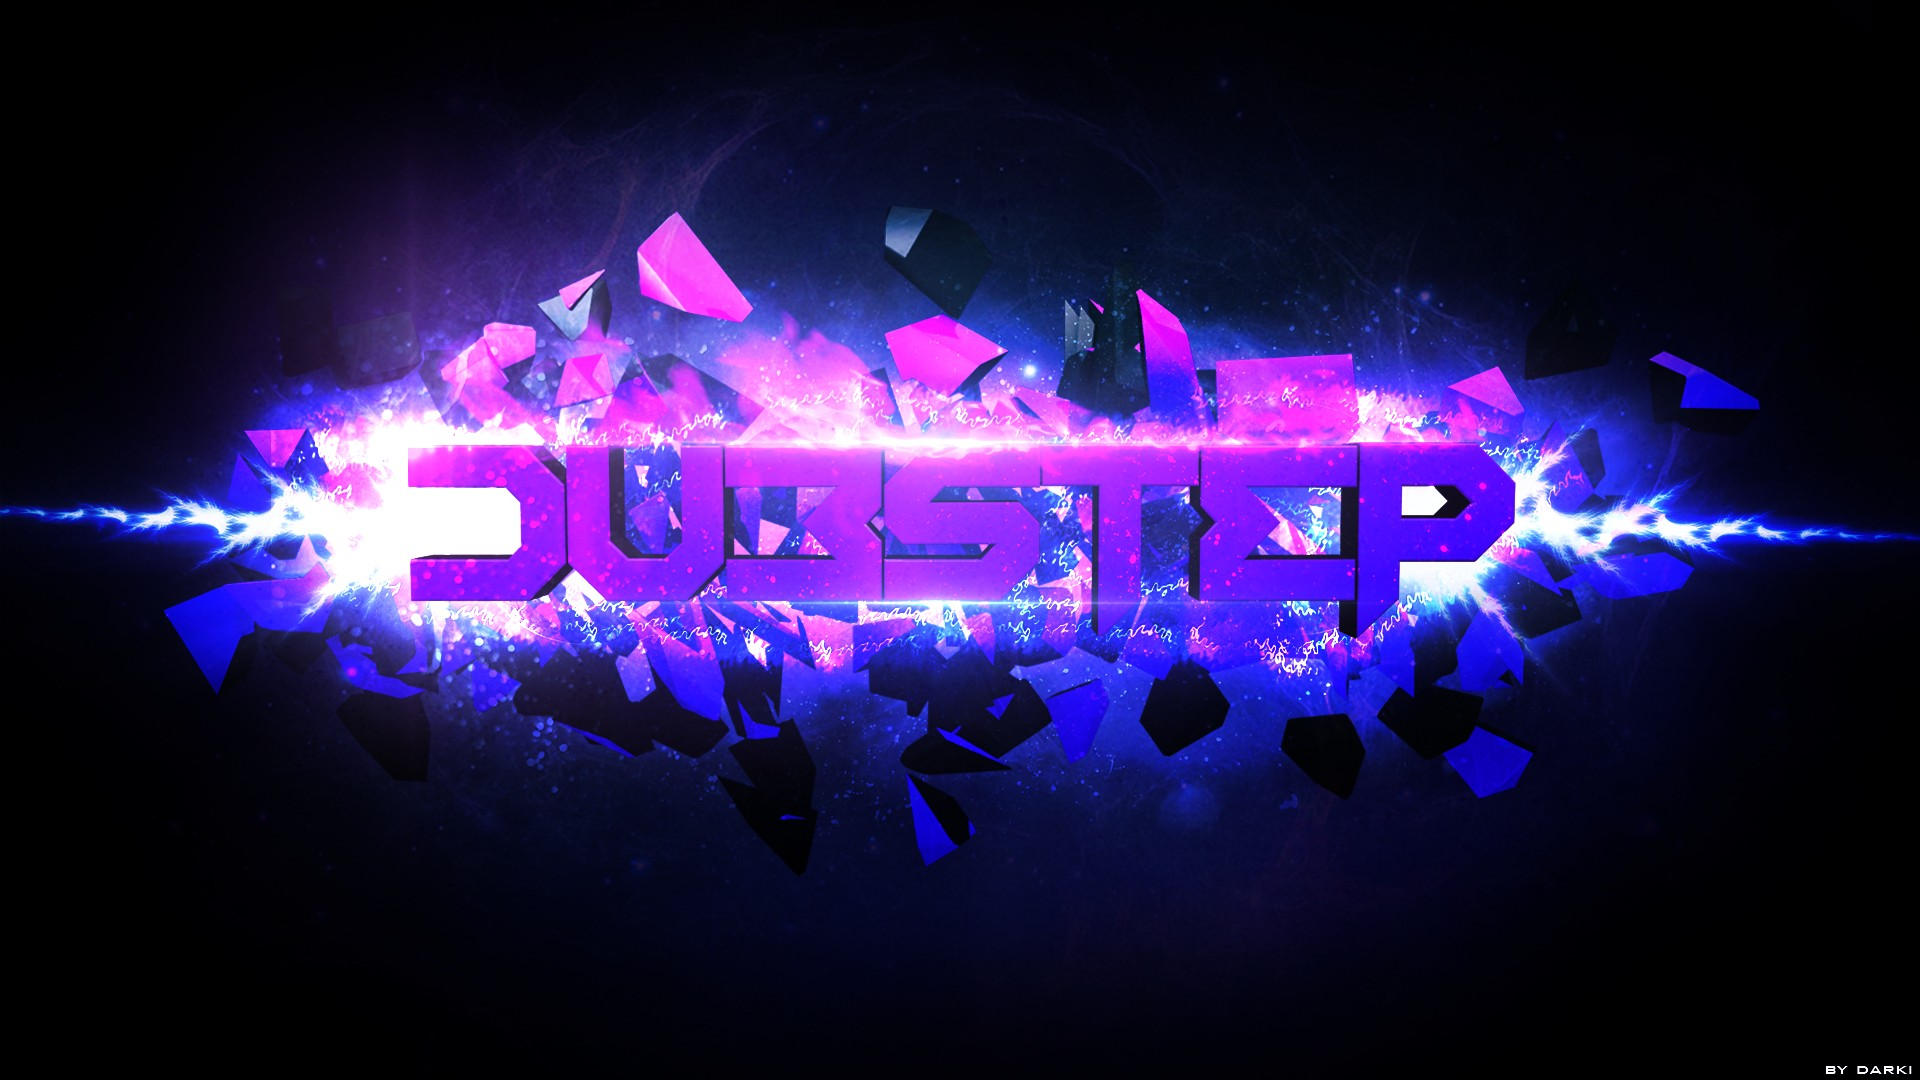 Dubstep wallpaper Download free HD wallpapers for desktop and